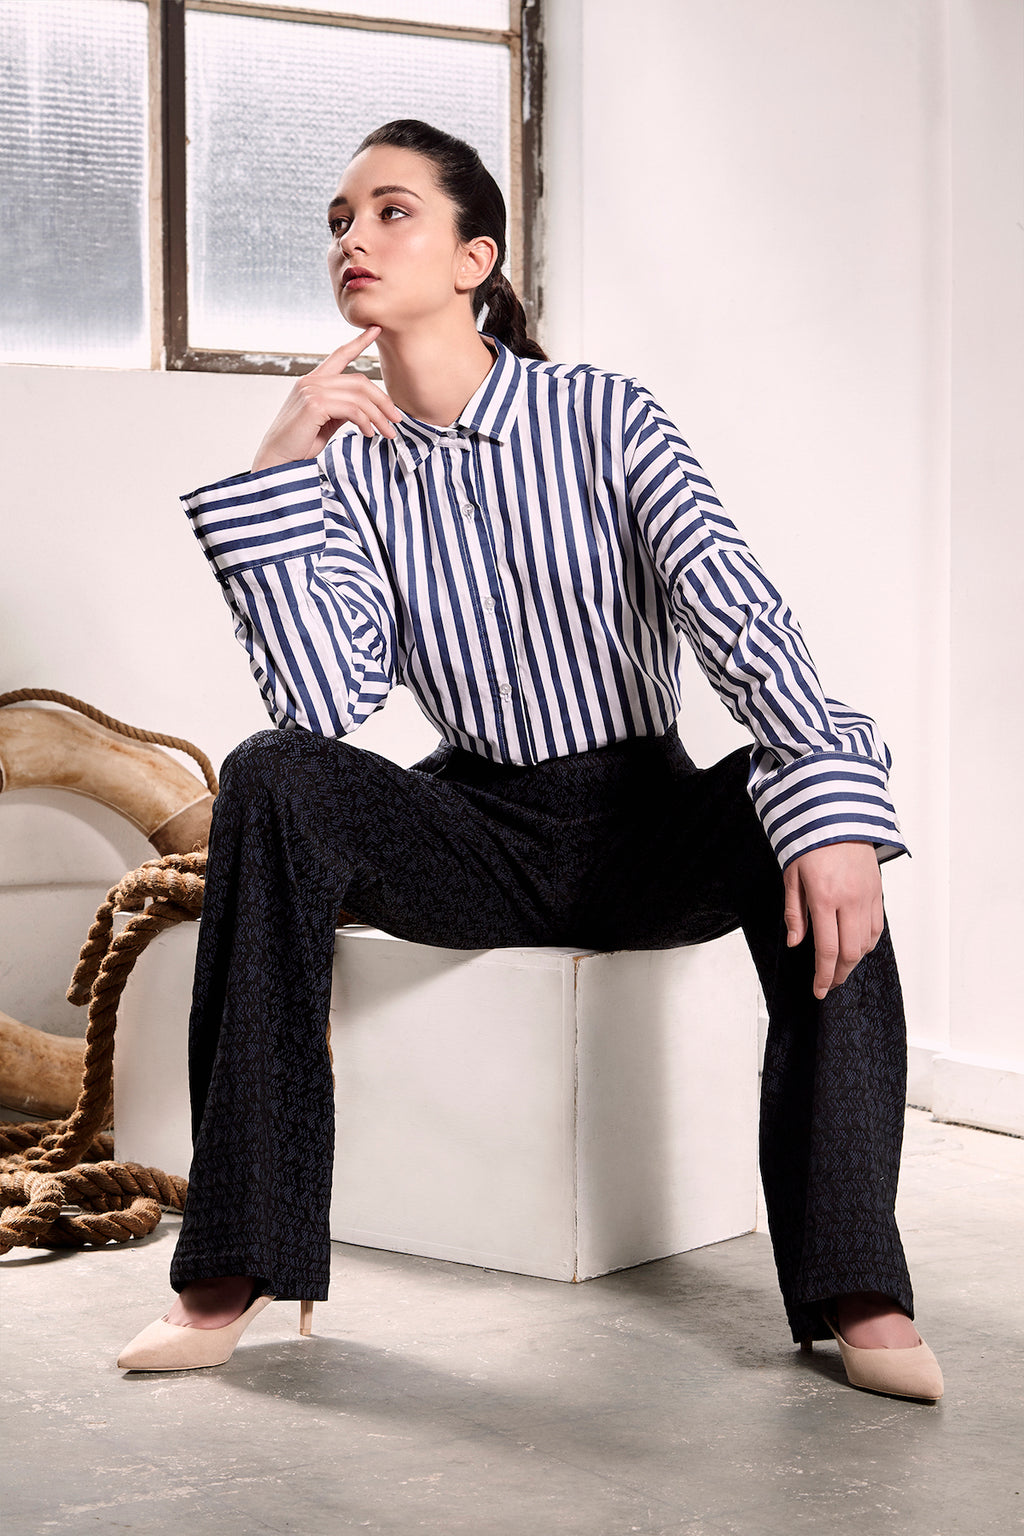 Striped Kyoto Shirt - Shirts - The Fashion Advocate - Ethical Australian fashion online like - Melbourne fashion blogger